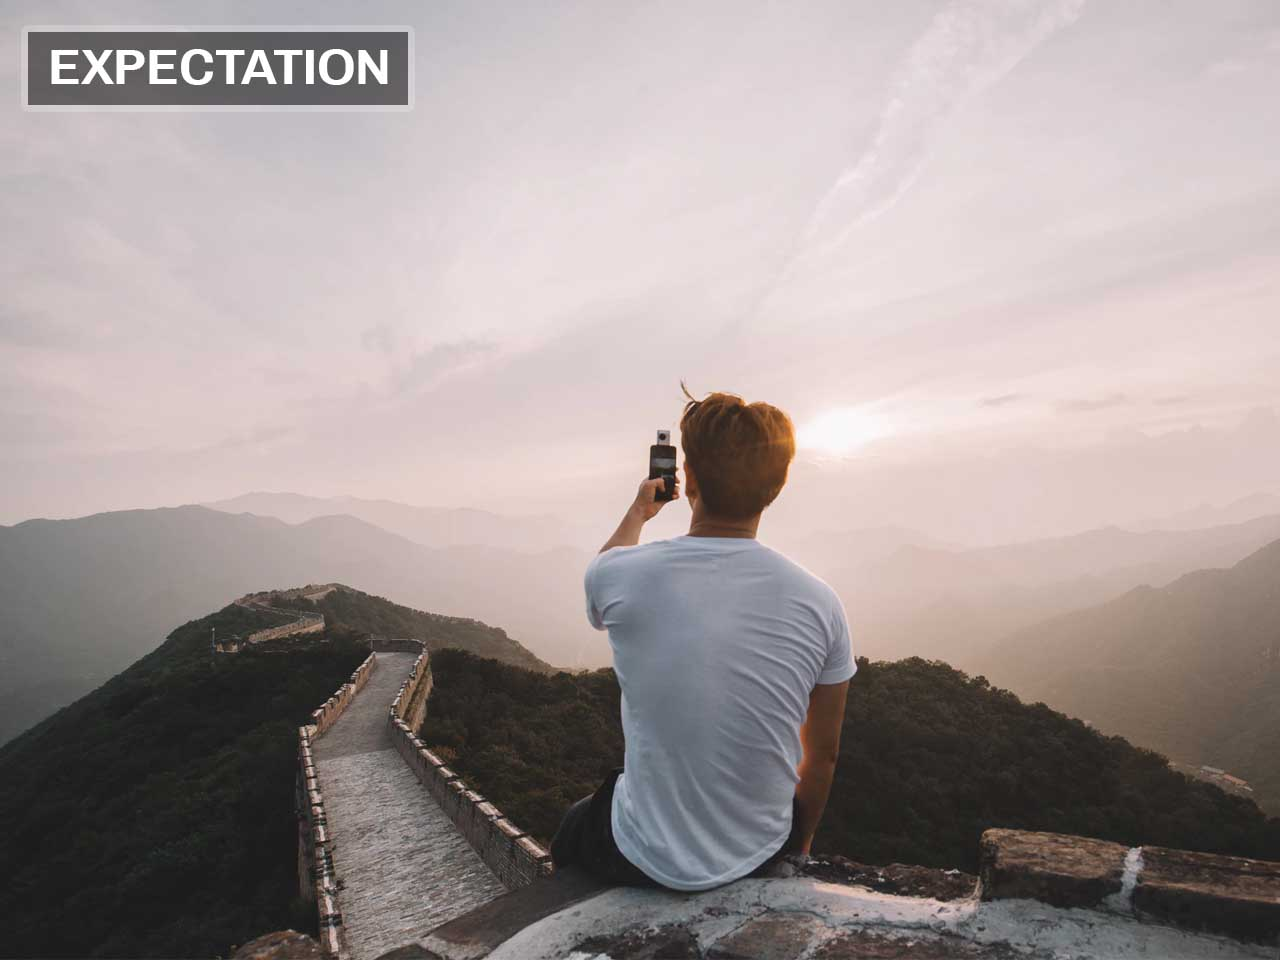 Expectation, reality, China, Great Wall, places, life